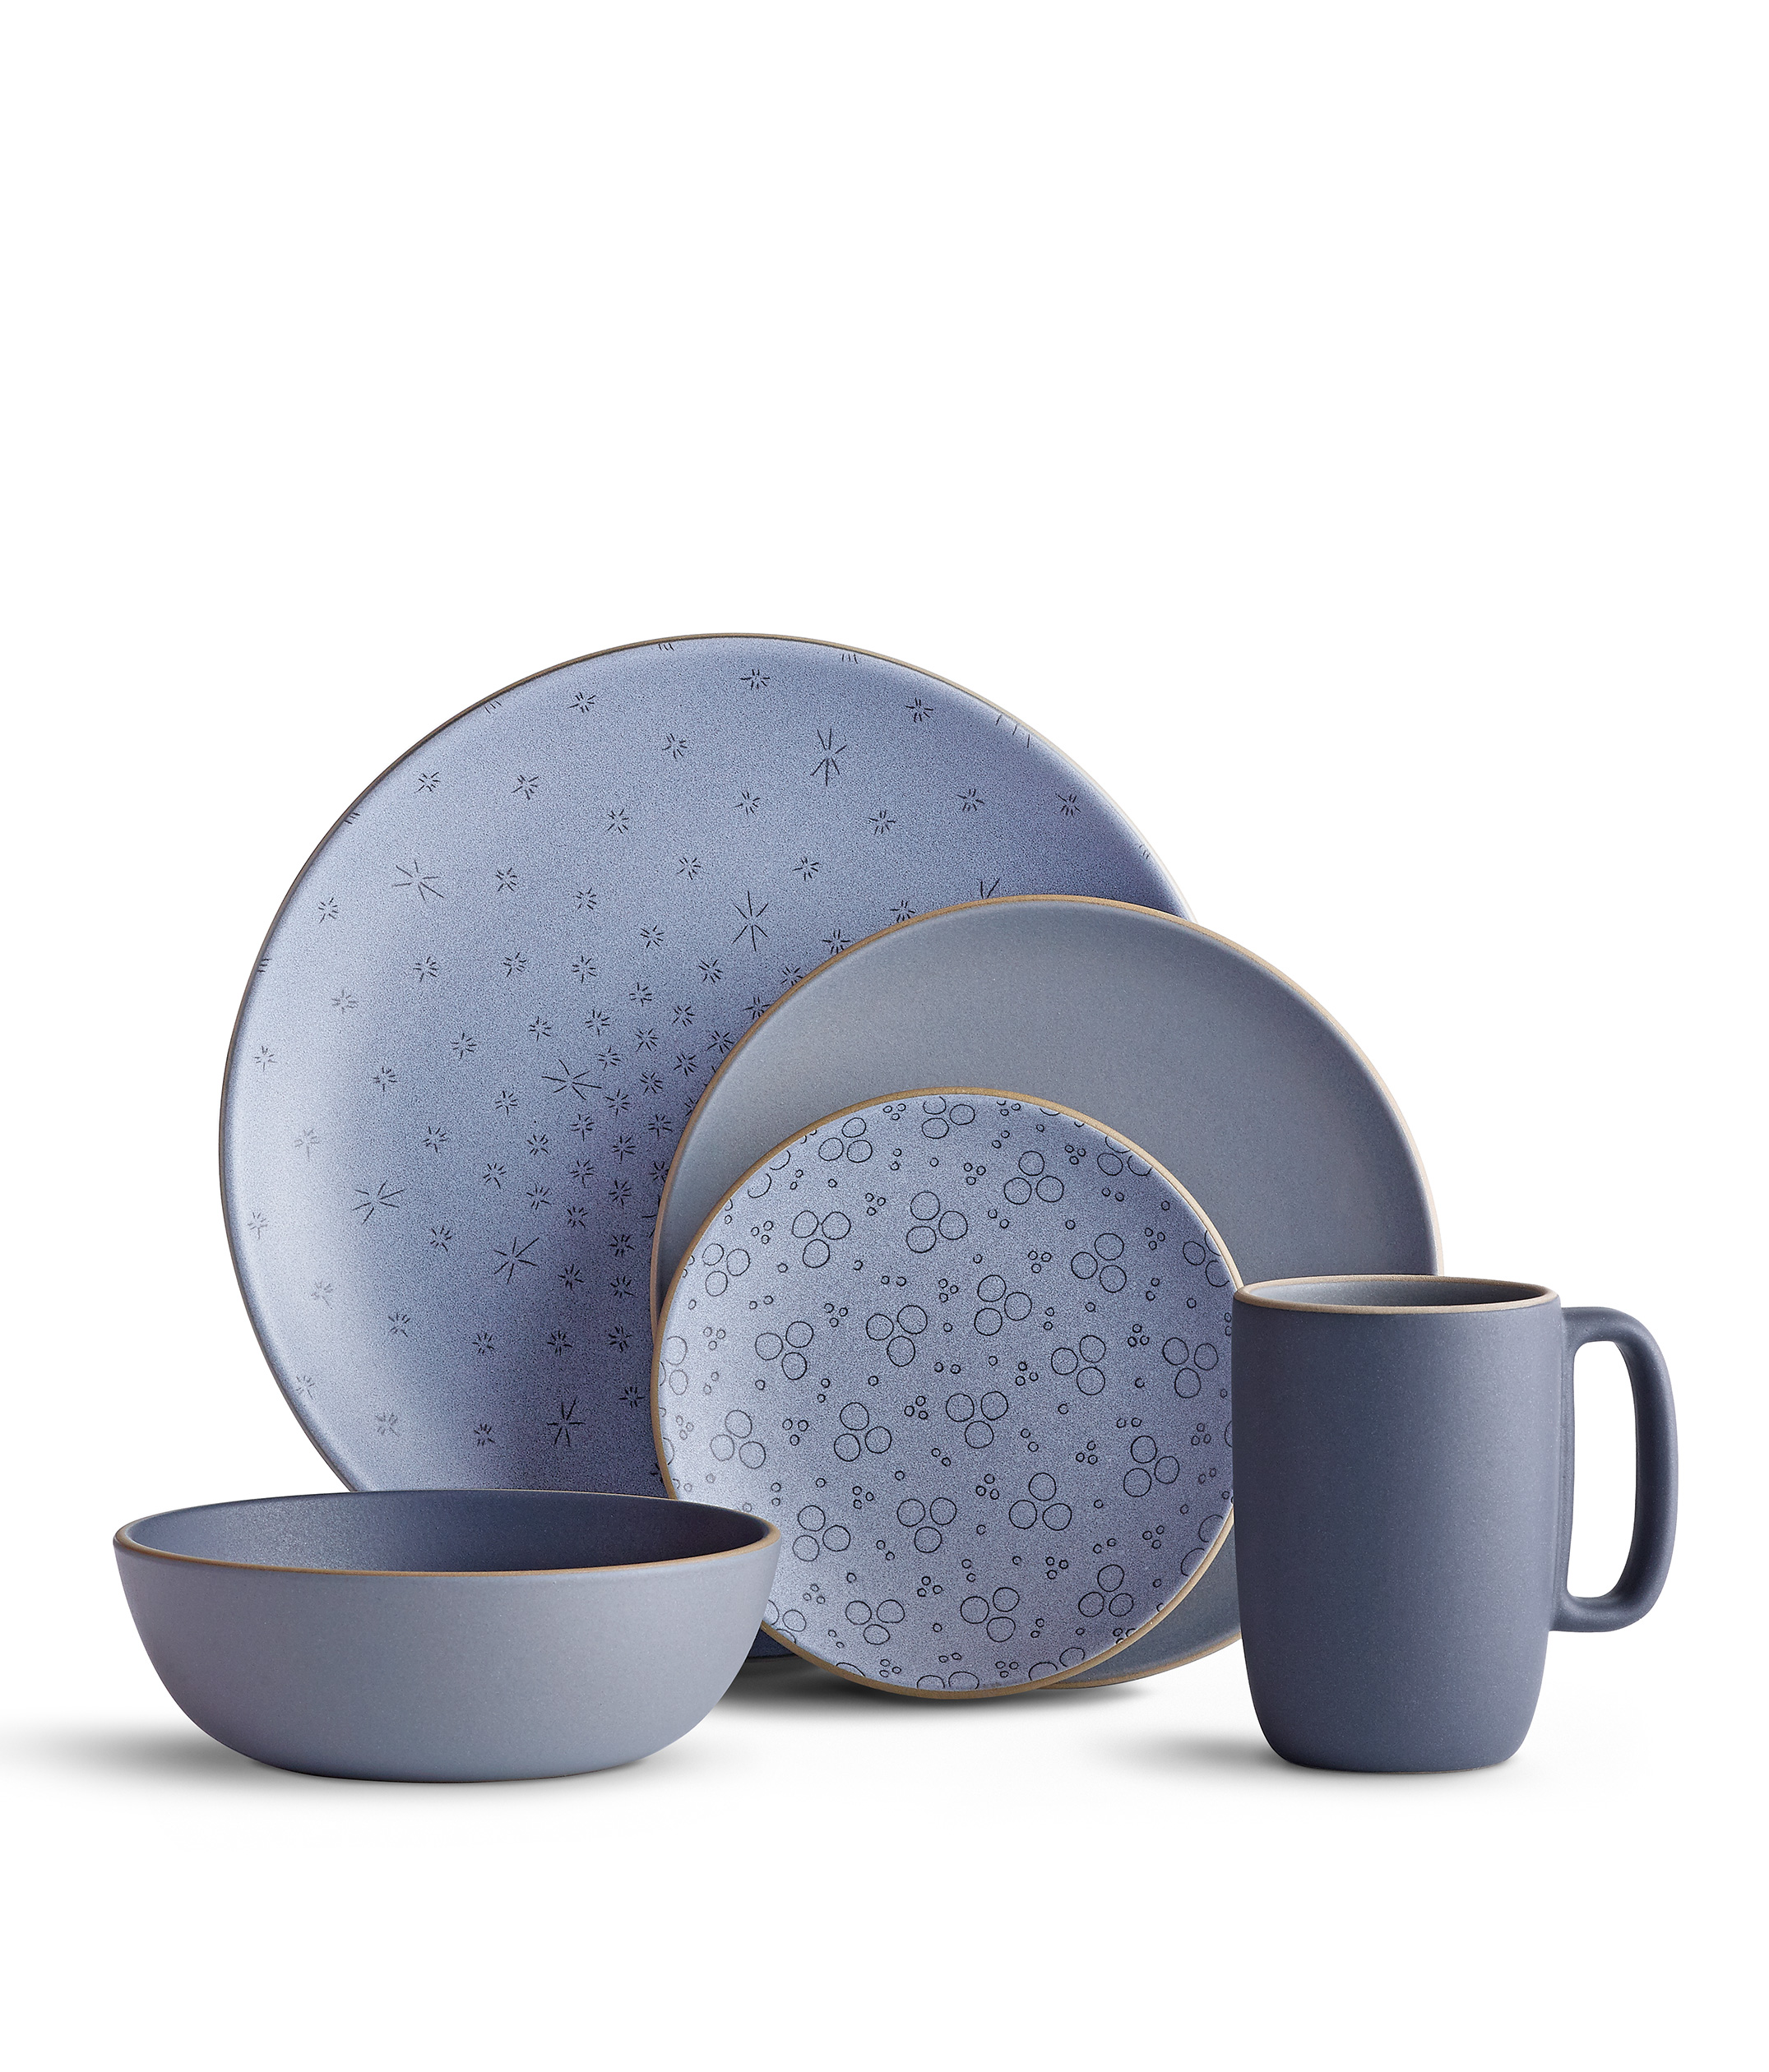 Stoneware Dinnerware Sets | Blue Stoneware Dinnerware Sets | Square Dinnerware Sets